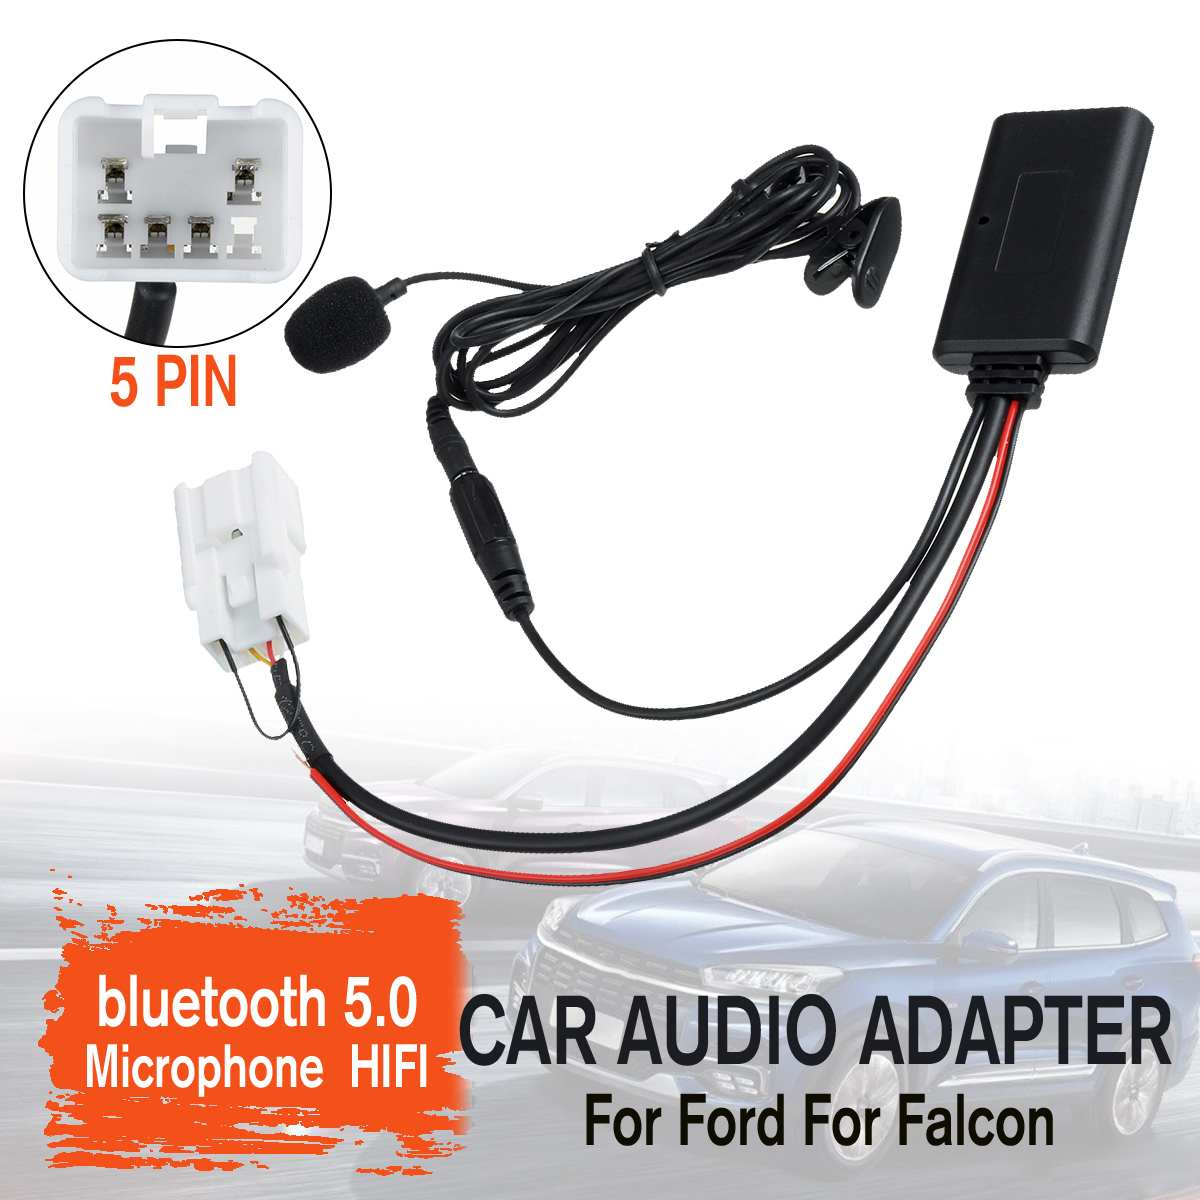 Car HIFI Wireless 5pin Stereo Radio Aux In MP3 Cable Music Player Adaptor MIC For Ford For Falcon|Bluetooth Car Kit| |  - title=